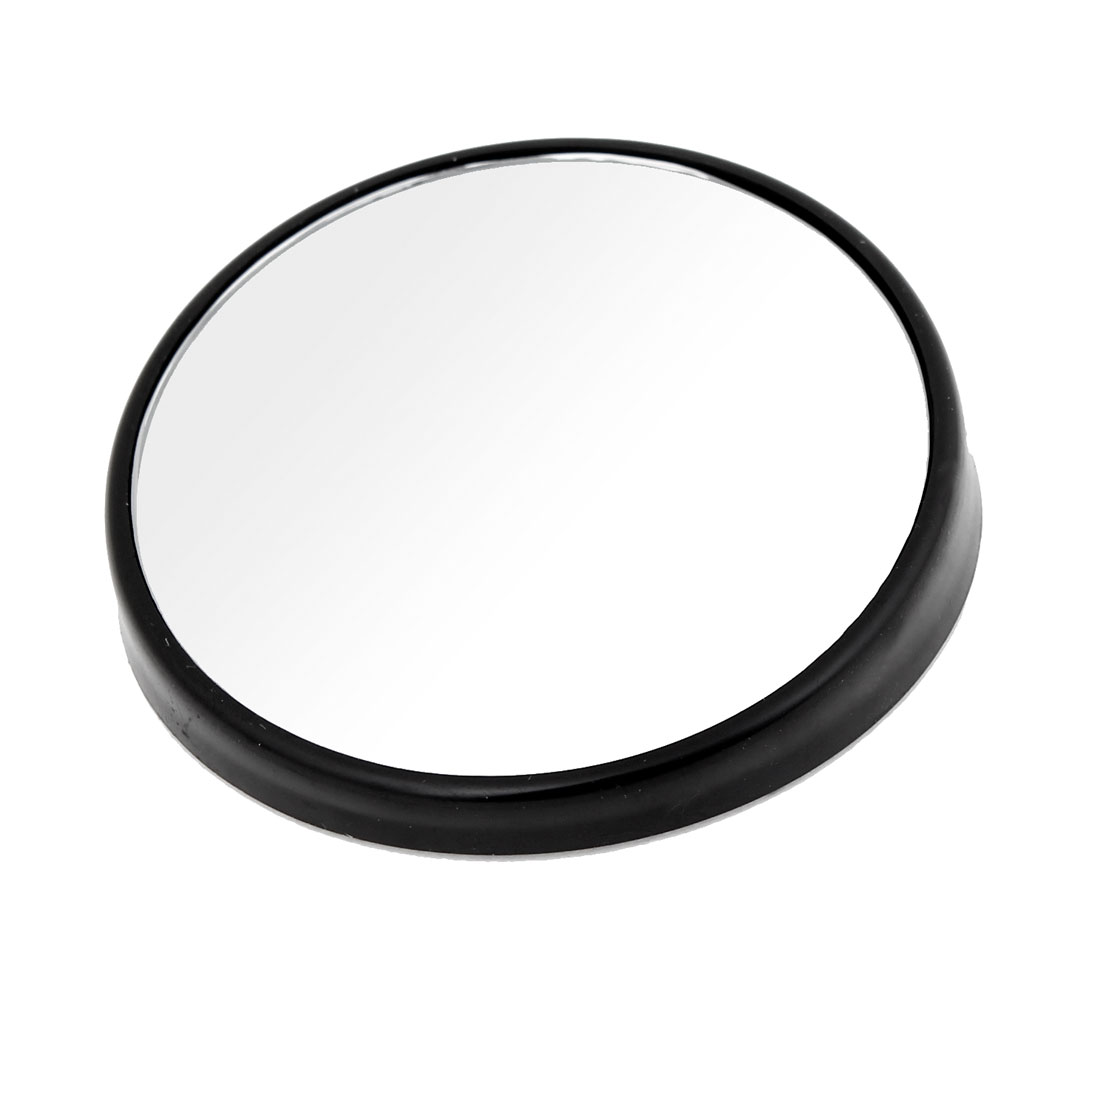 Car Vehicle 75mm Dia Round Wide Angle Convex Blind Spot Mirror Black